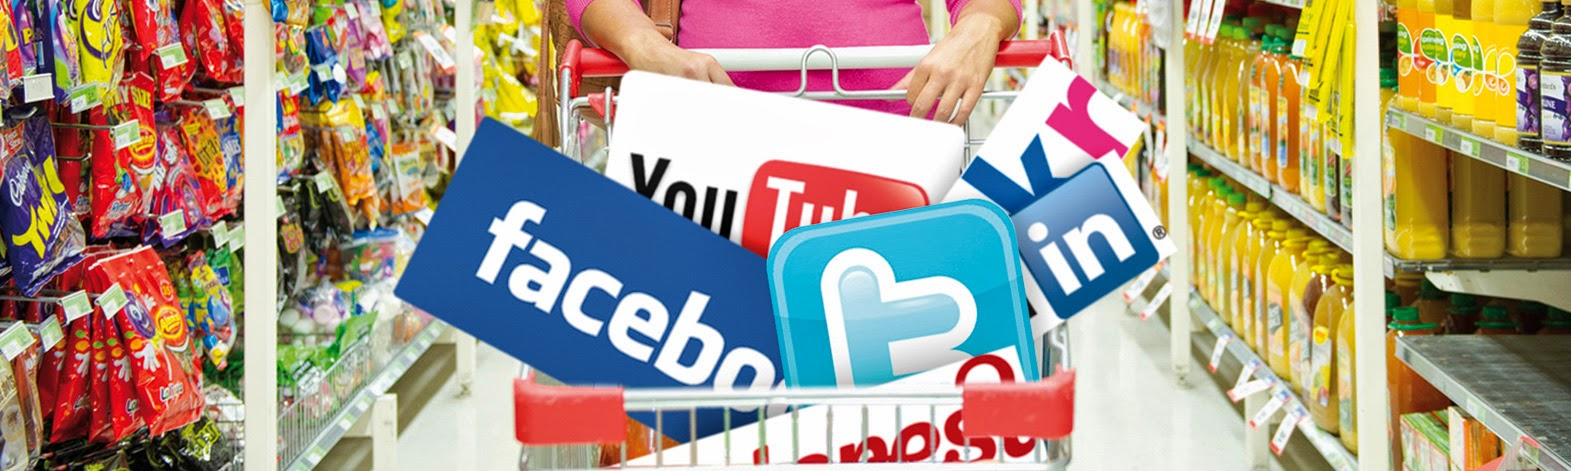 The Impact And Influence Of Social Media And On-line Retail On The CPG Industry